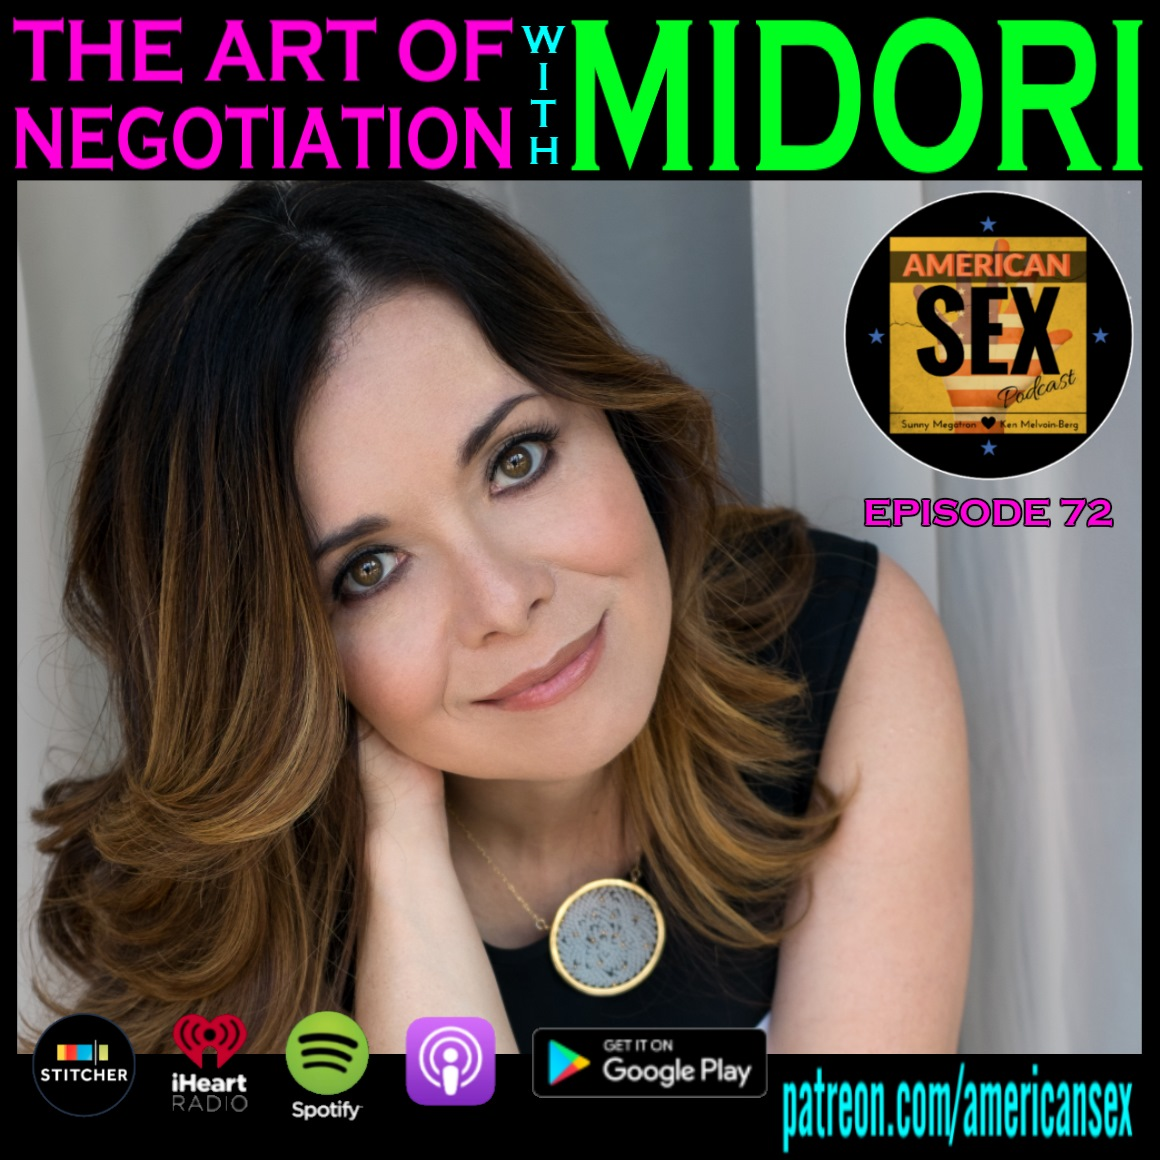 Midori How to make negotiation sexy